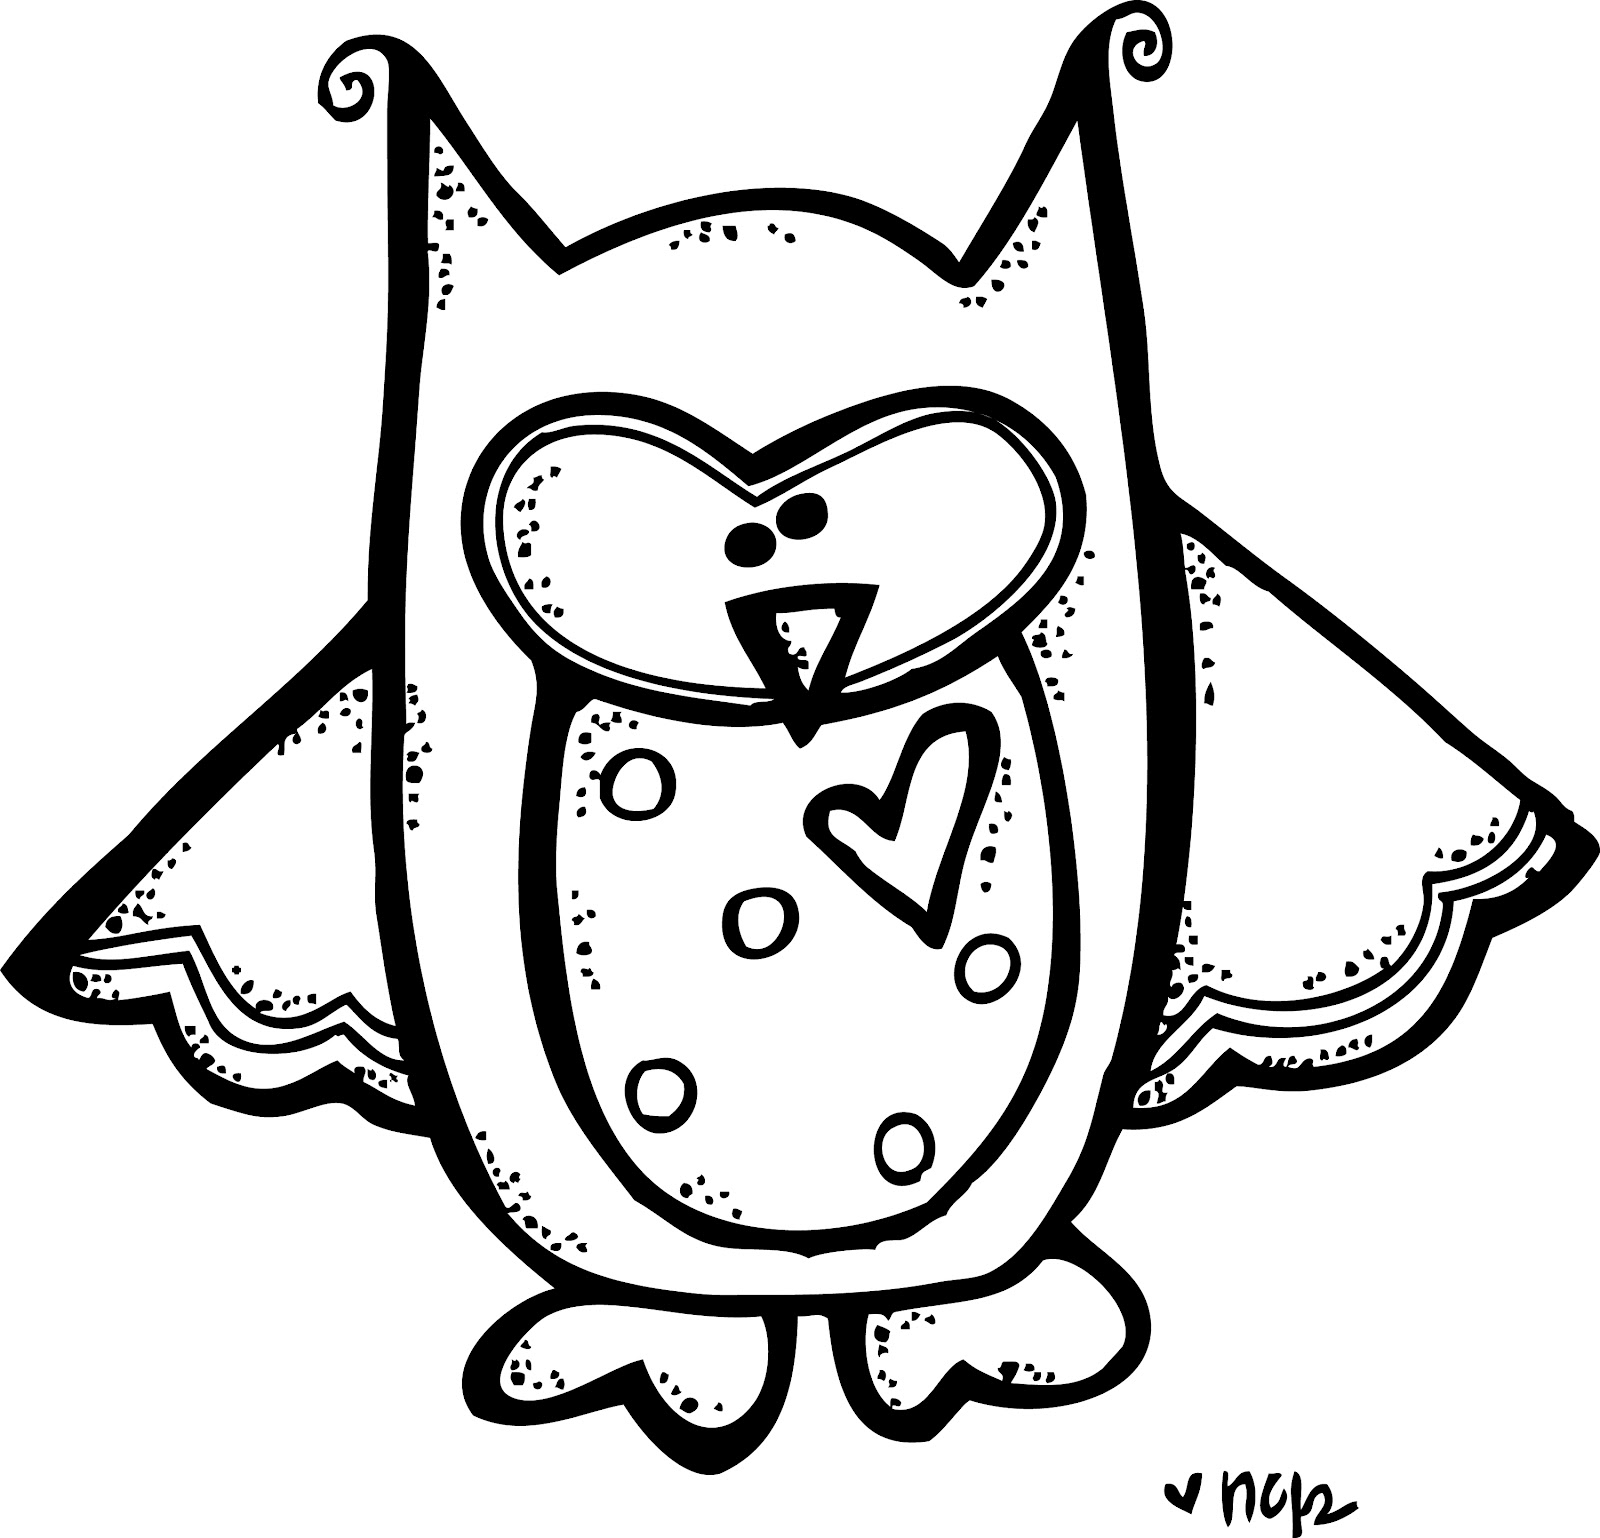 Teacher Owl Clip Art Black And White Owl always be your friend!